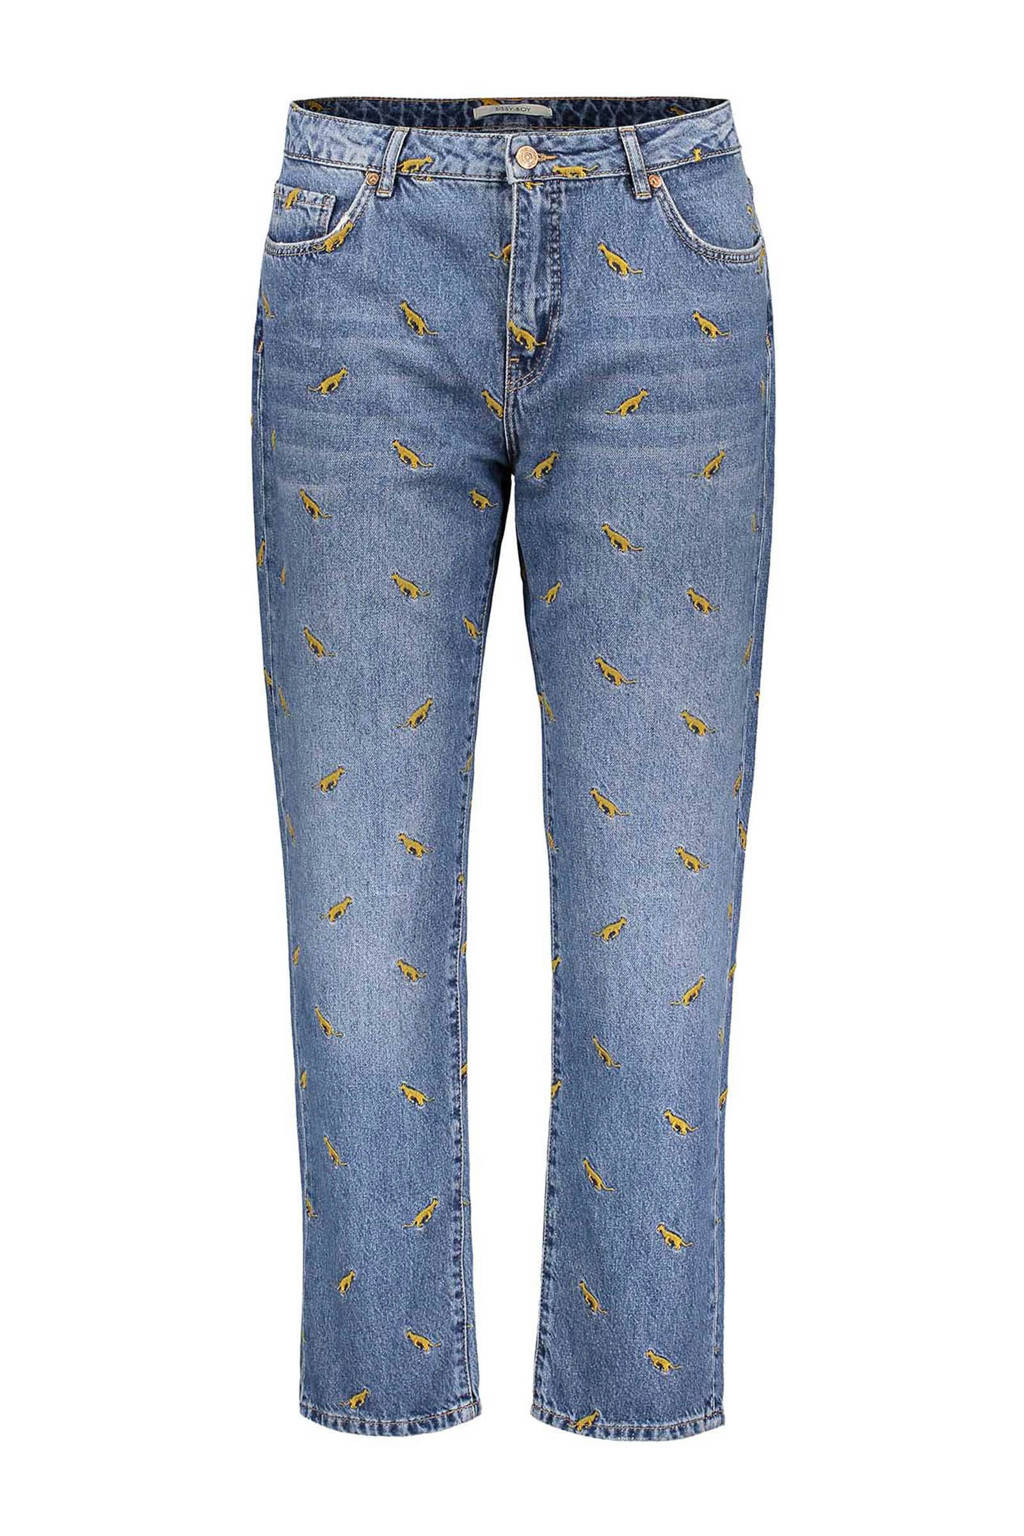 reputable site a4d98 f660f loose fit jeans met all over print en borduursels denim